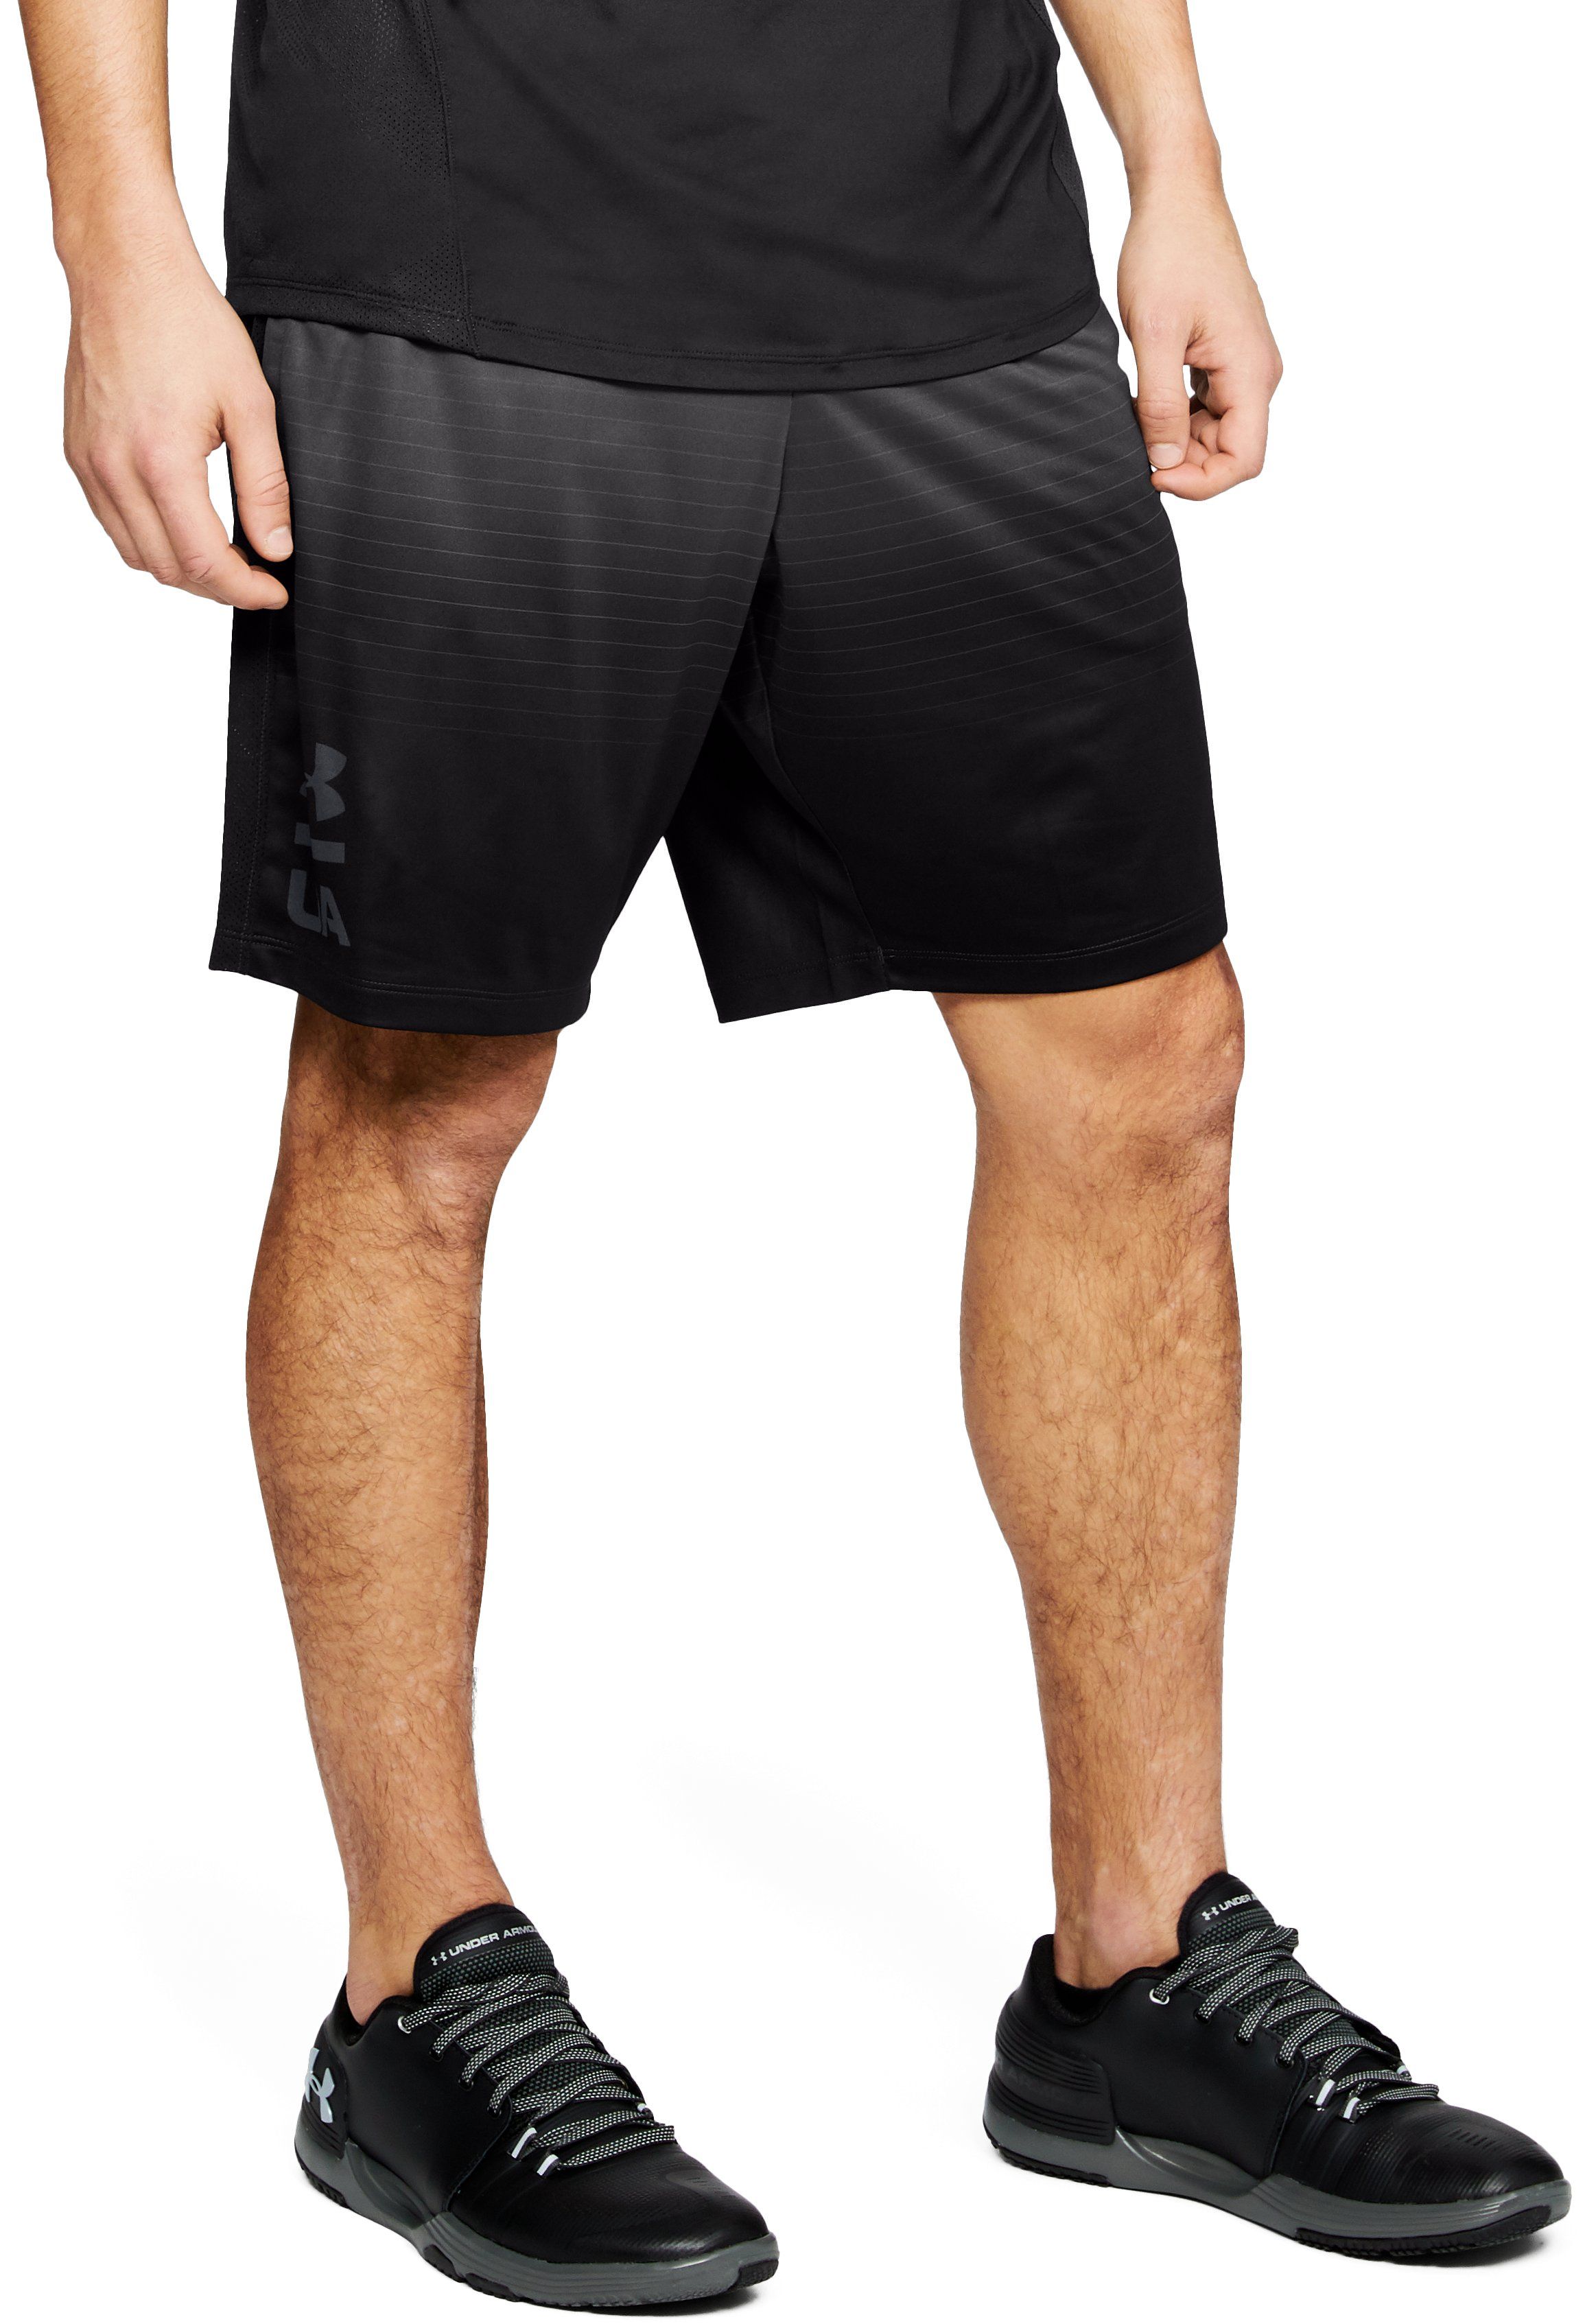 MK1 Short Fade Novelty, Charcoal, zoomed